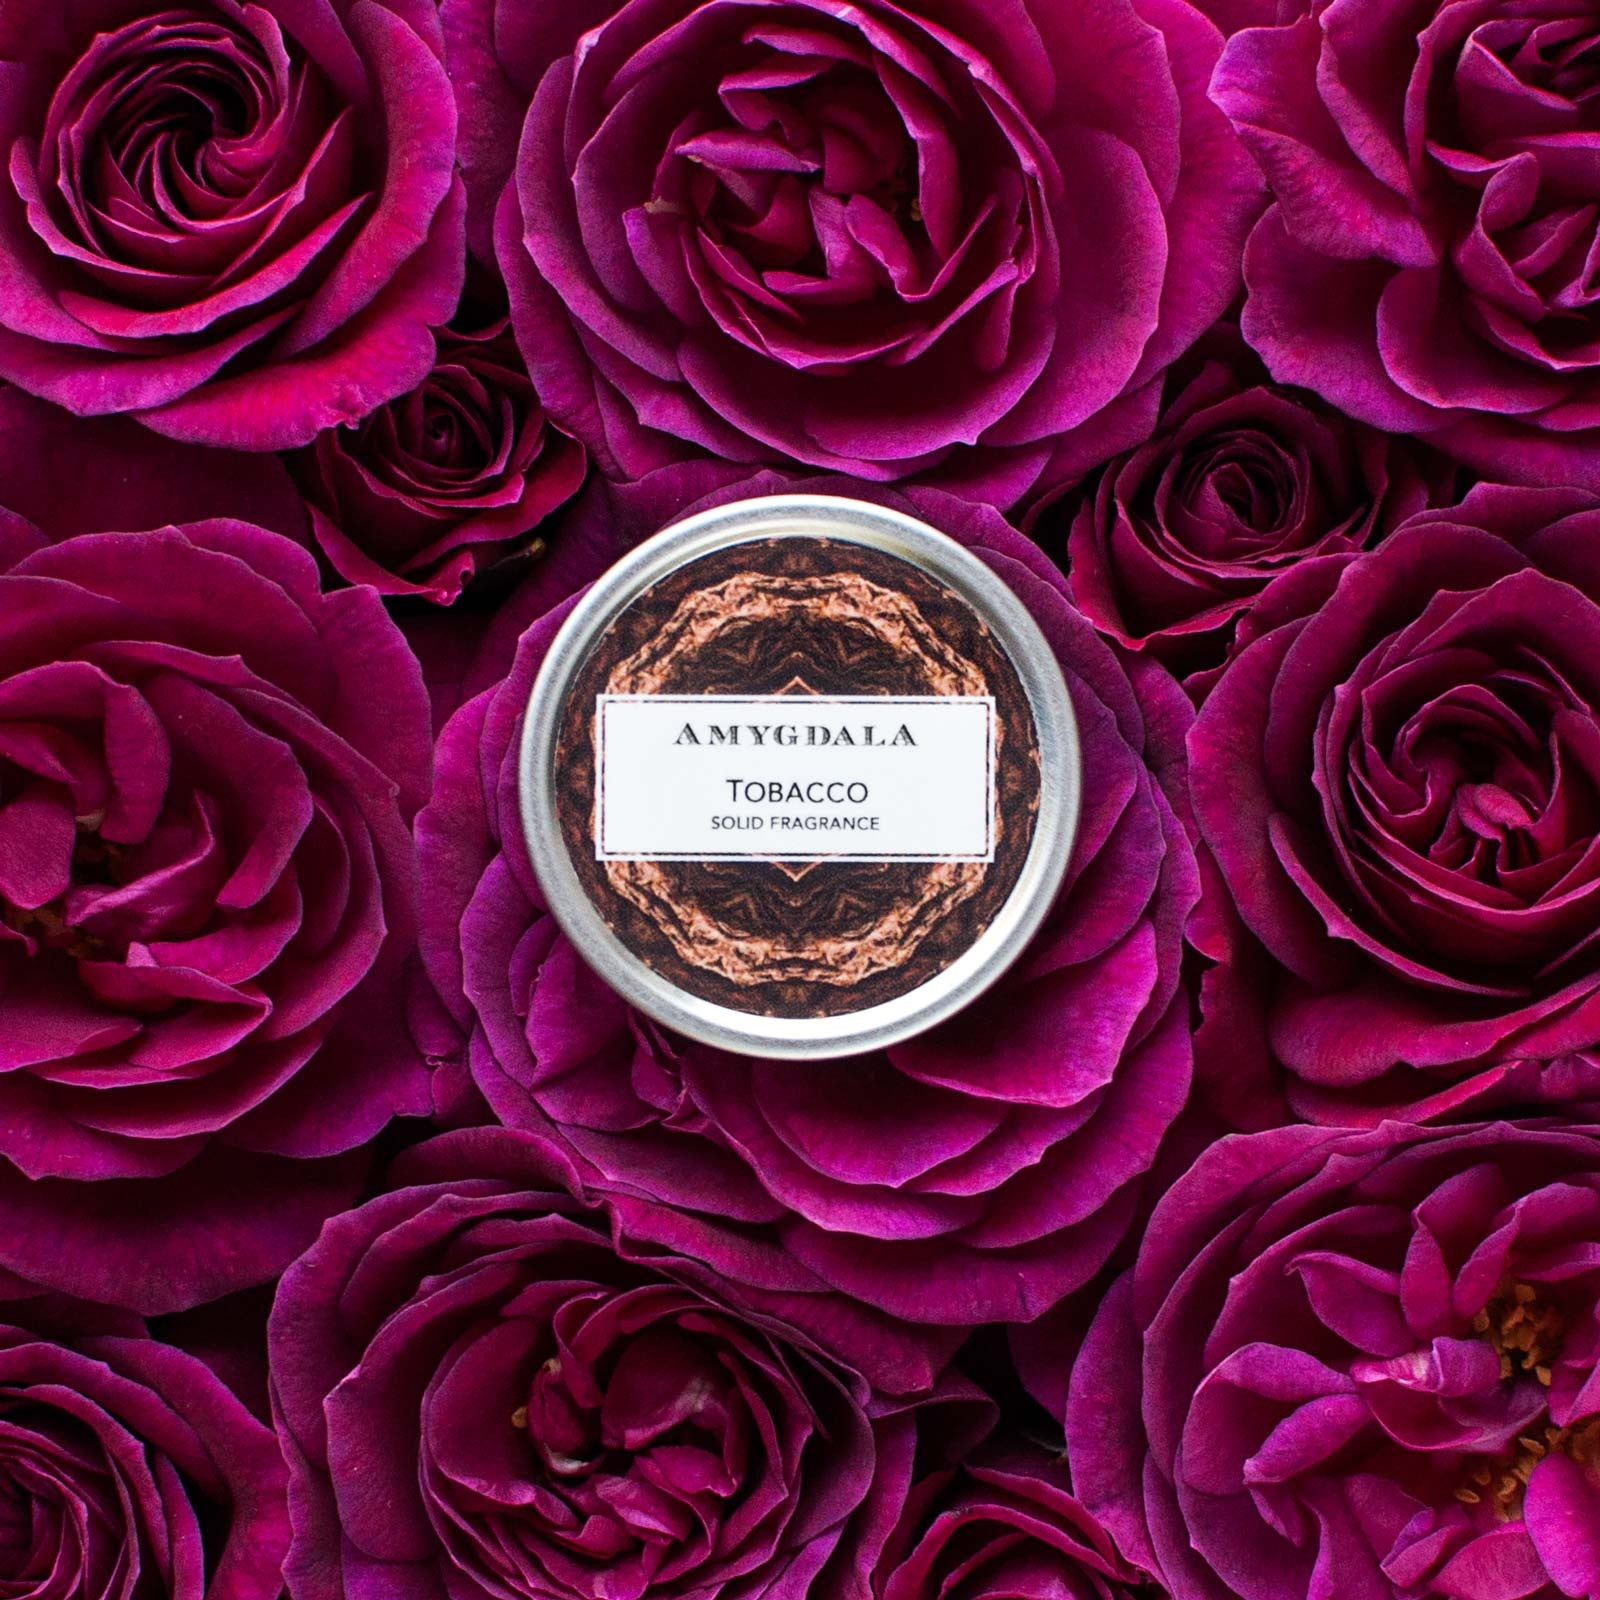 beautiful dark rose and tobacco solid perfume scent